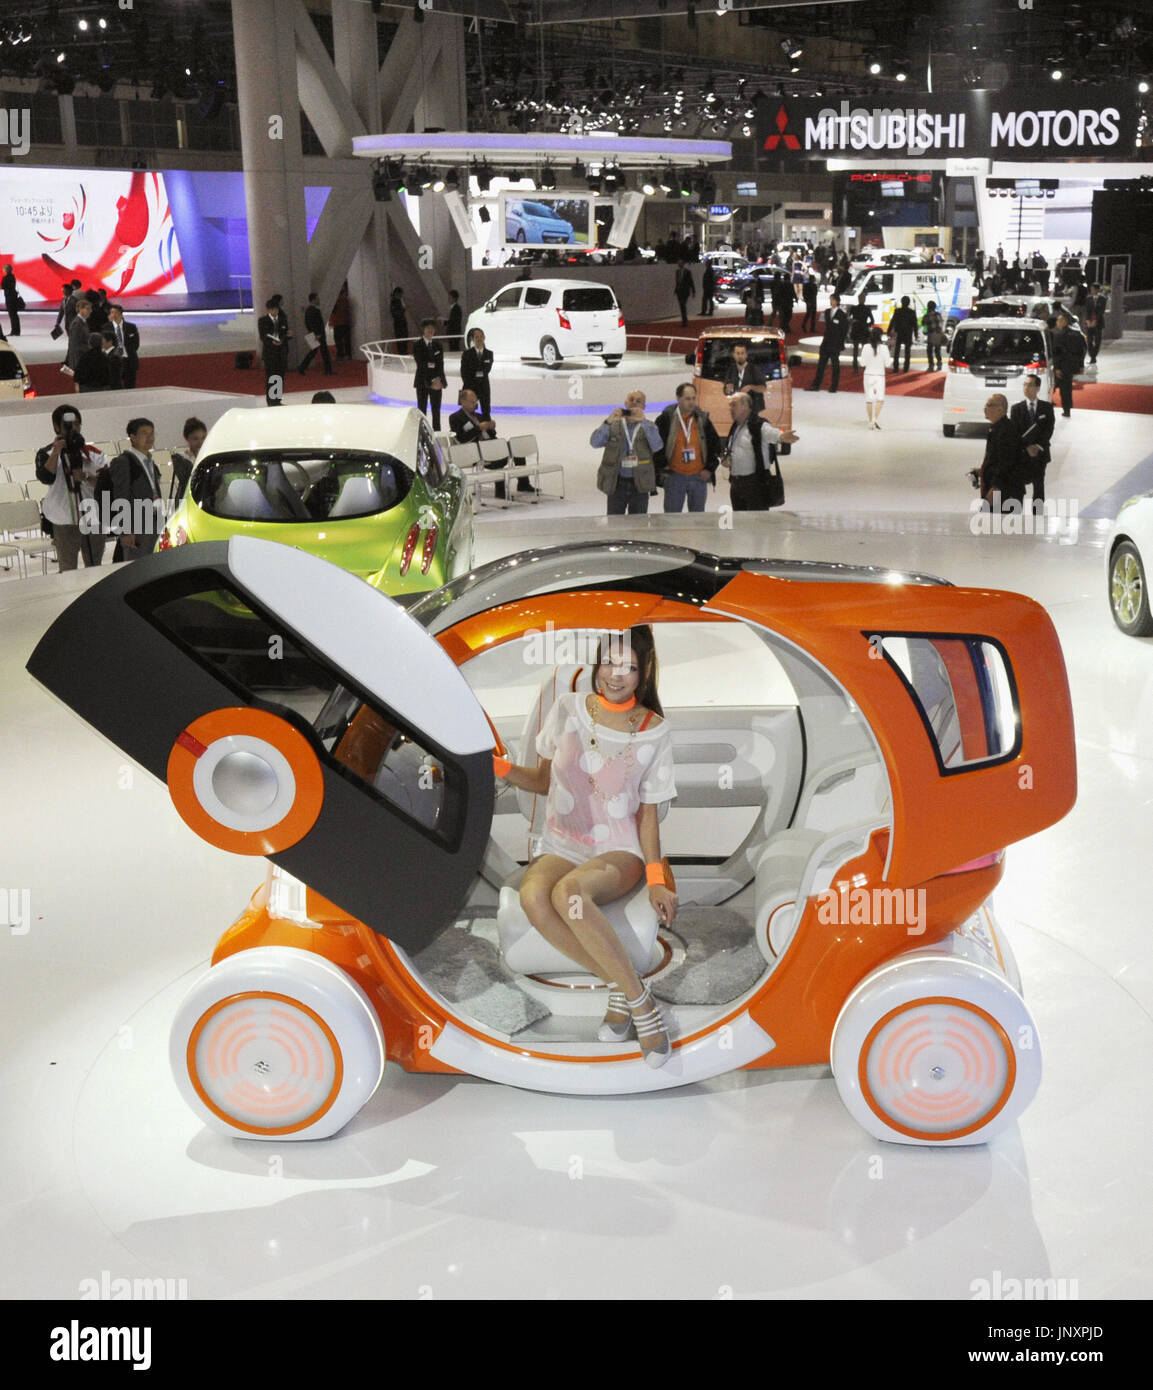 TOKYO, Japan - The Tokyo Motor Show opens to the press at Tokyo Big Sight in Koto Ward in the Japanese capital on Nov. 30, 2011.